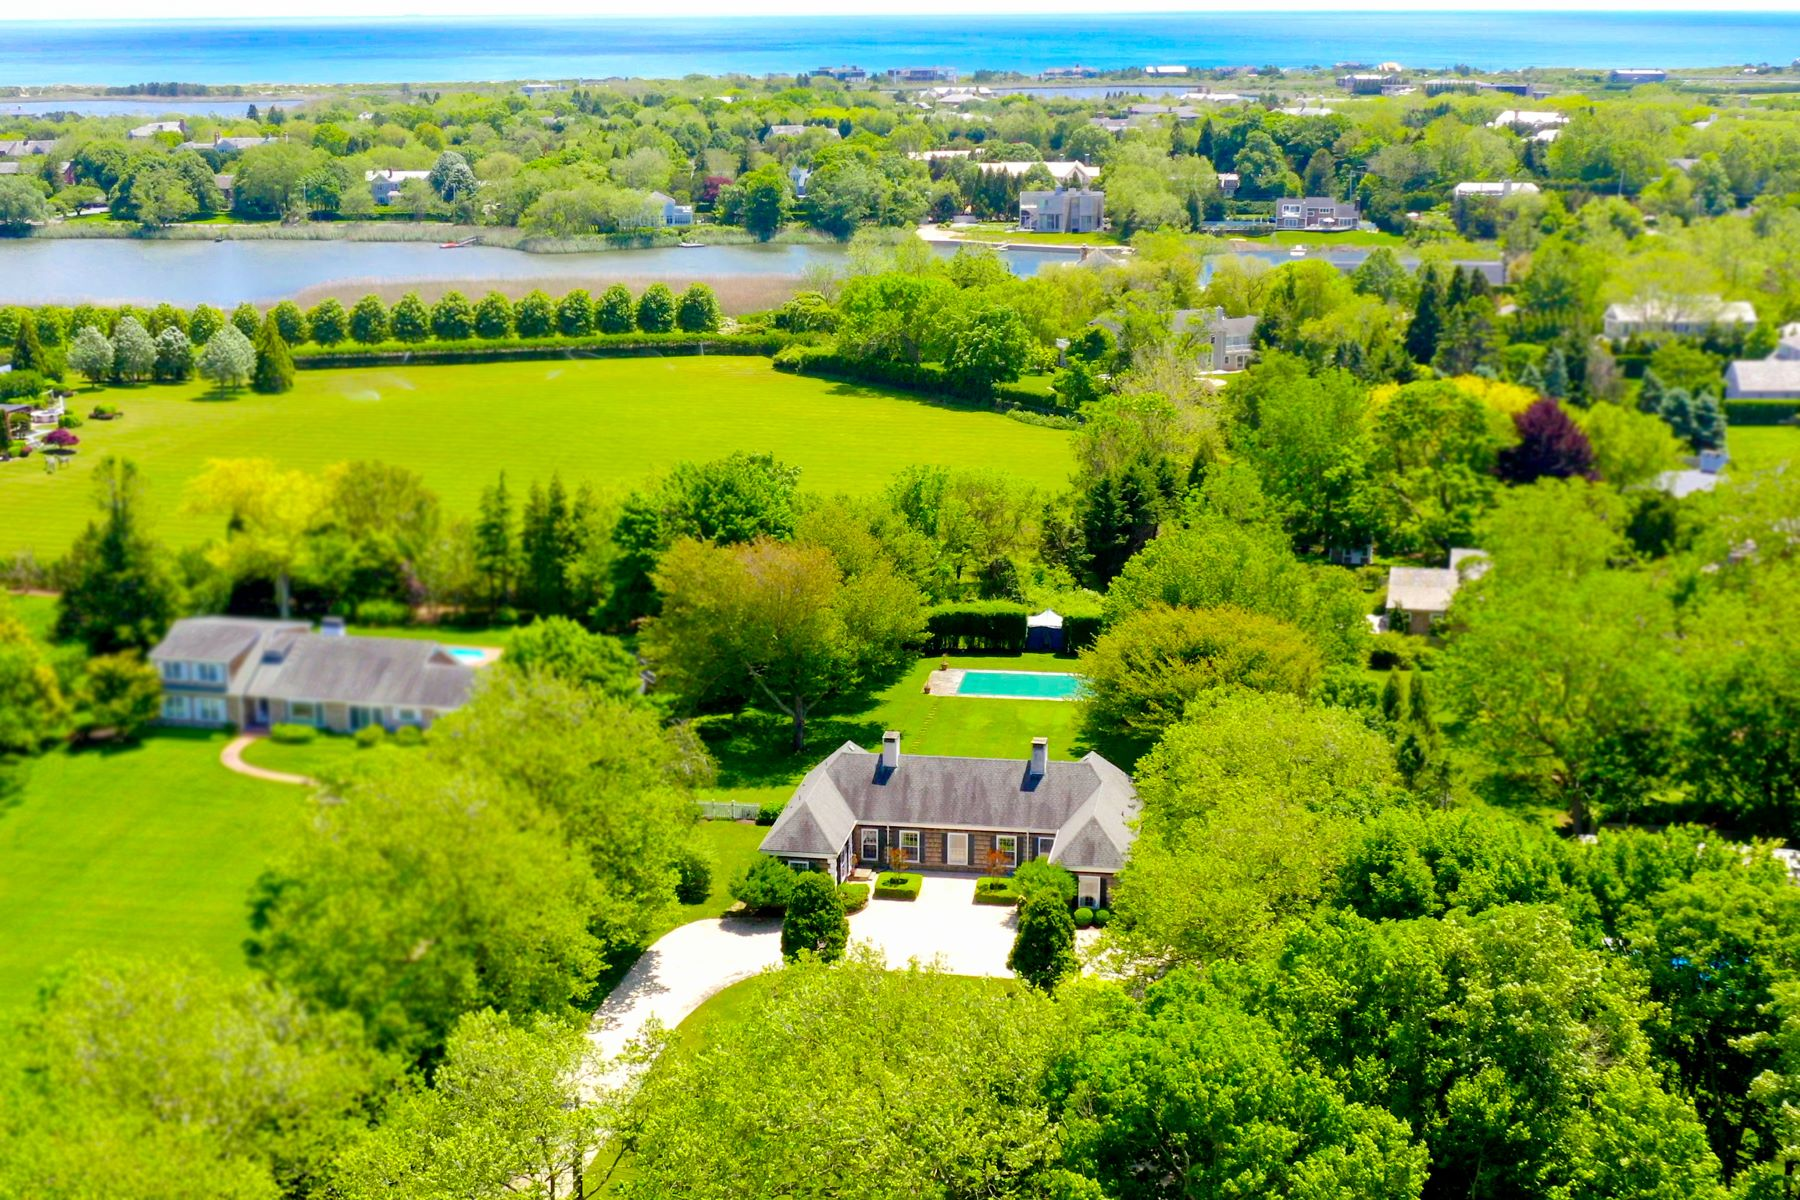 Single Family Homes for Sale at Bucolic Cobb Isle, Water Mill 12 Cobb Isle Road Water Mill, New York 11976 United States